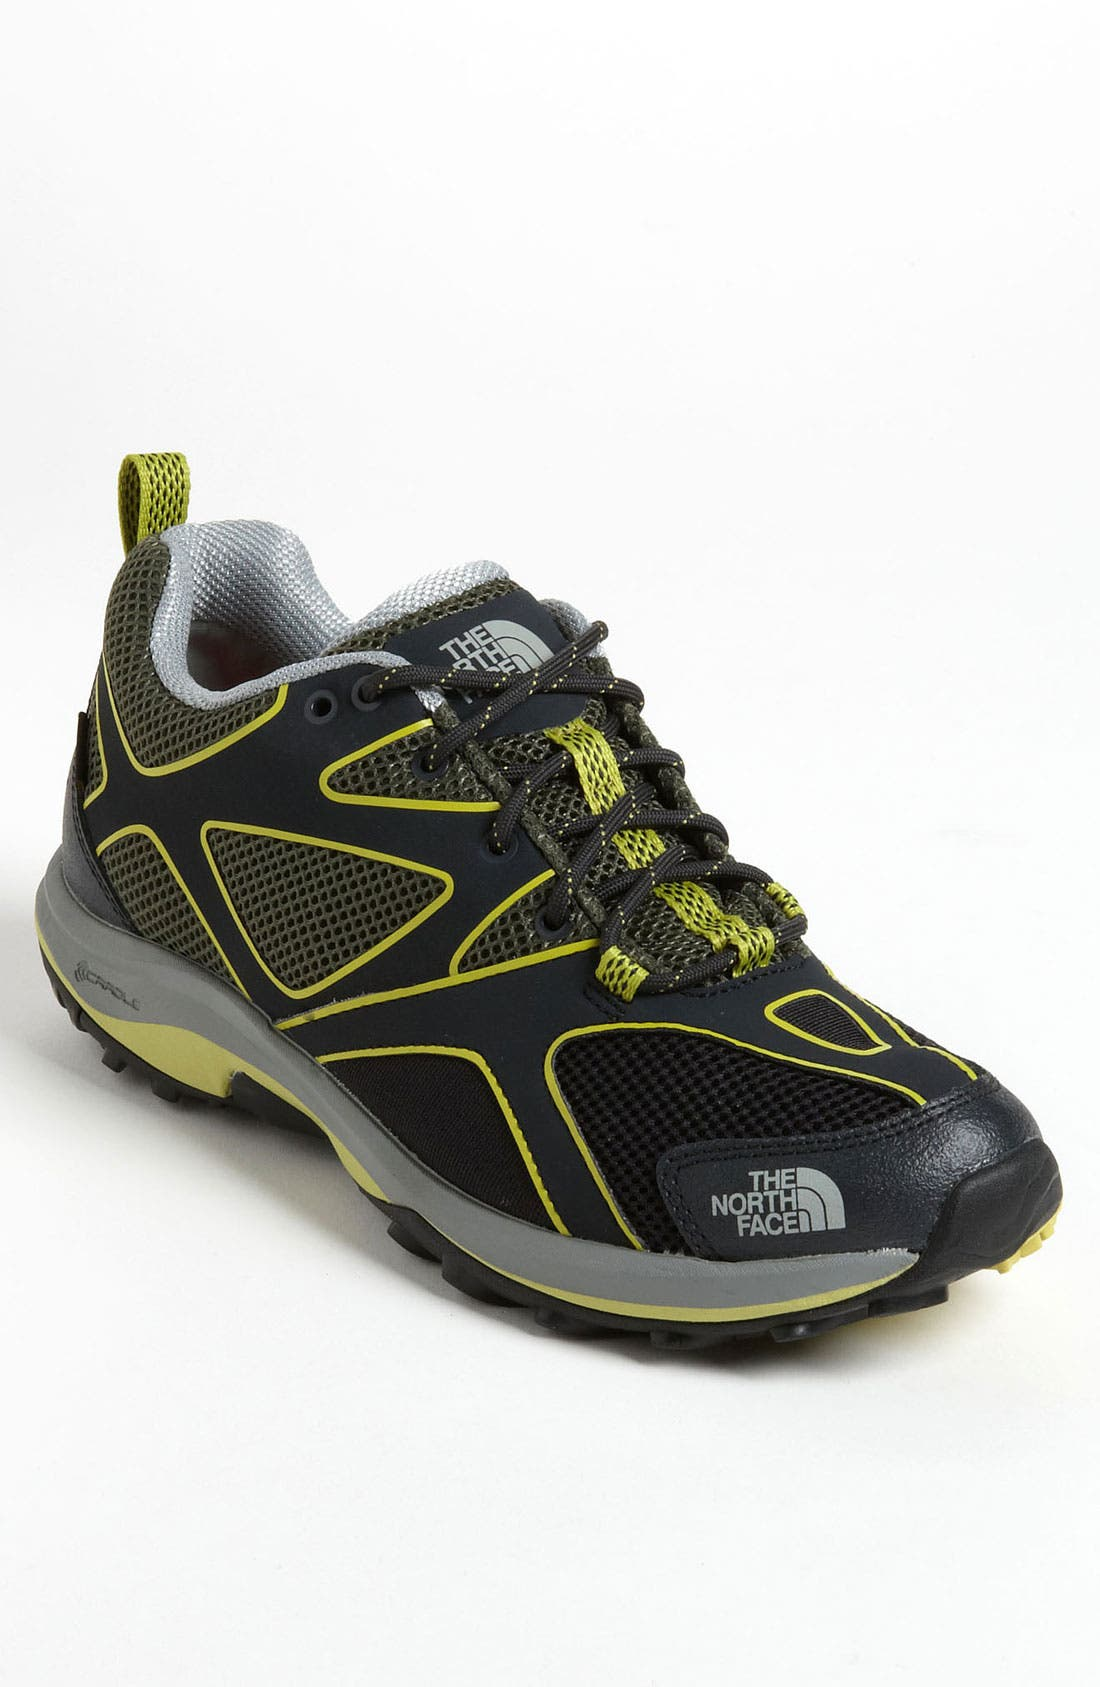 Main Image - The North Face 'Hedgehog Guide GTX' Hiking Shoe